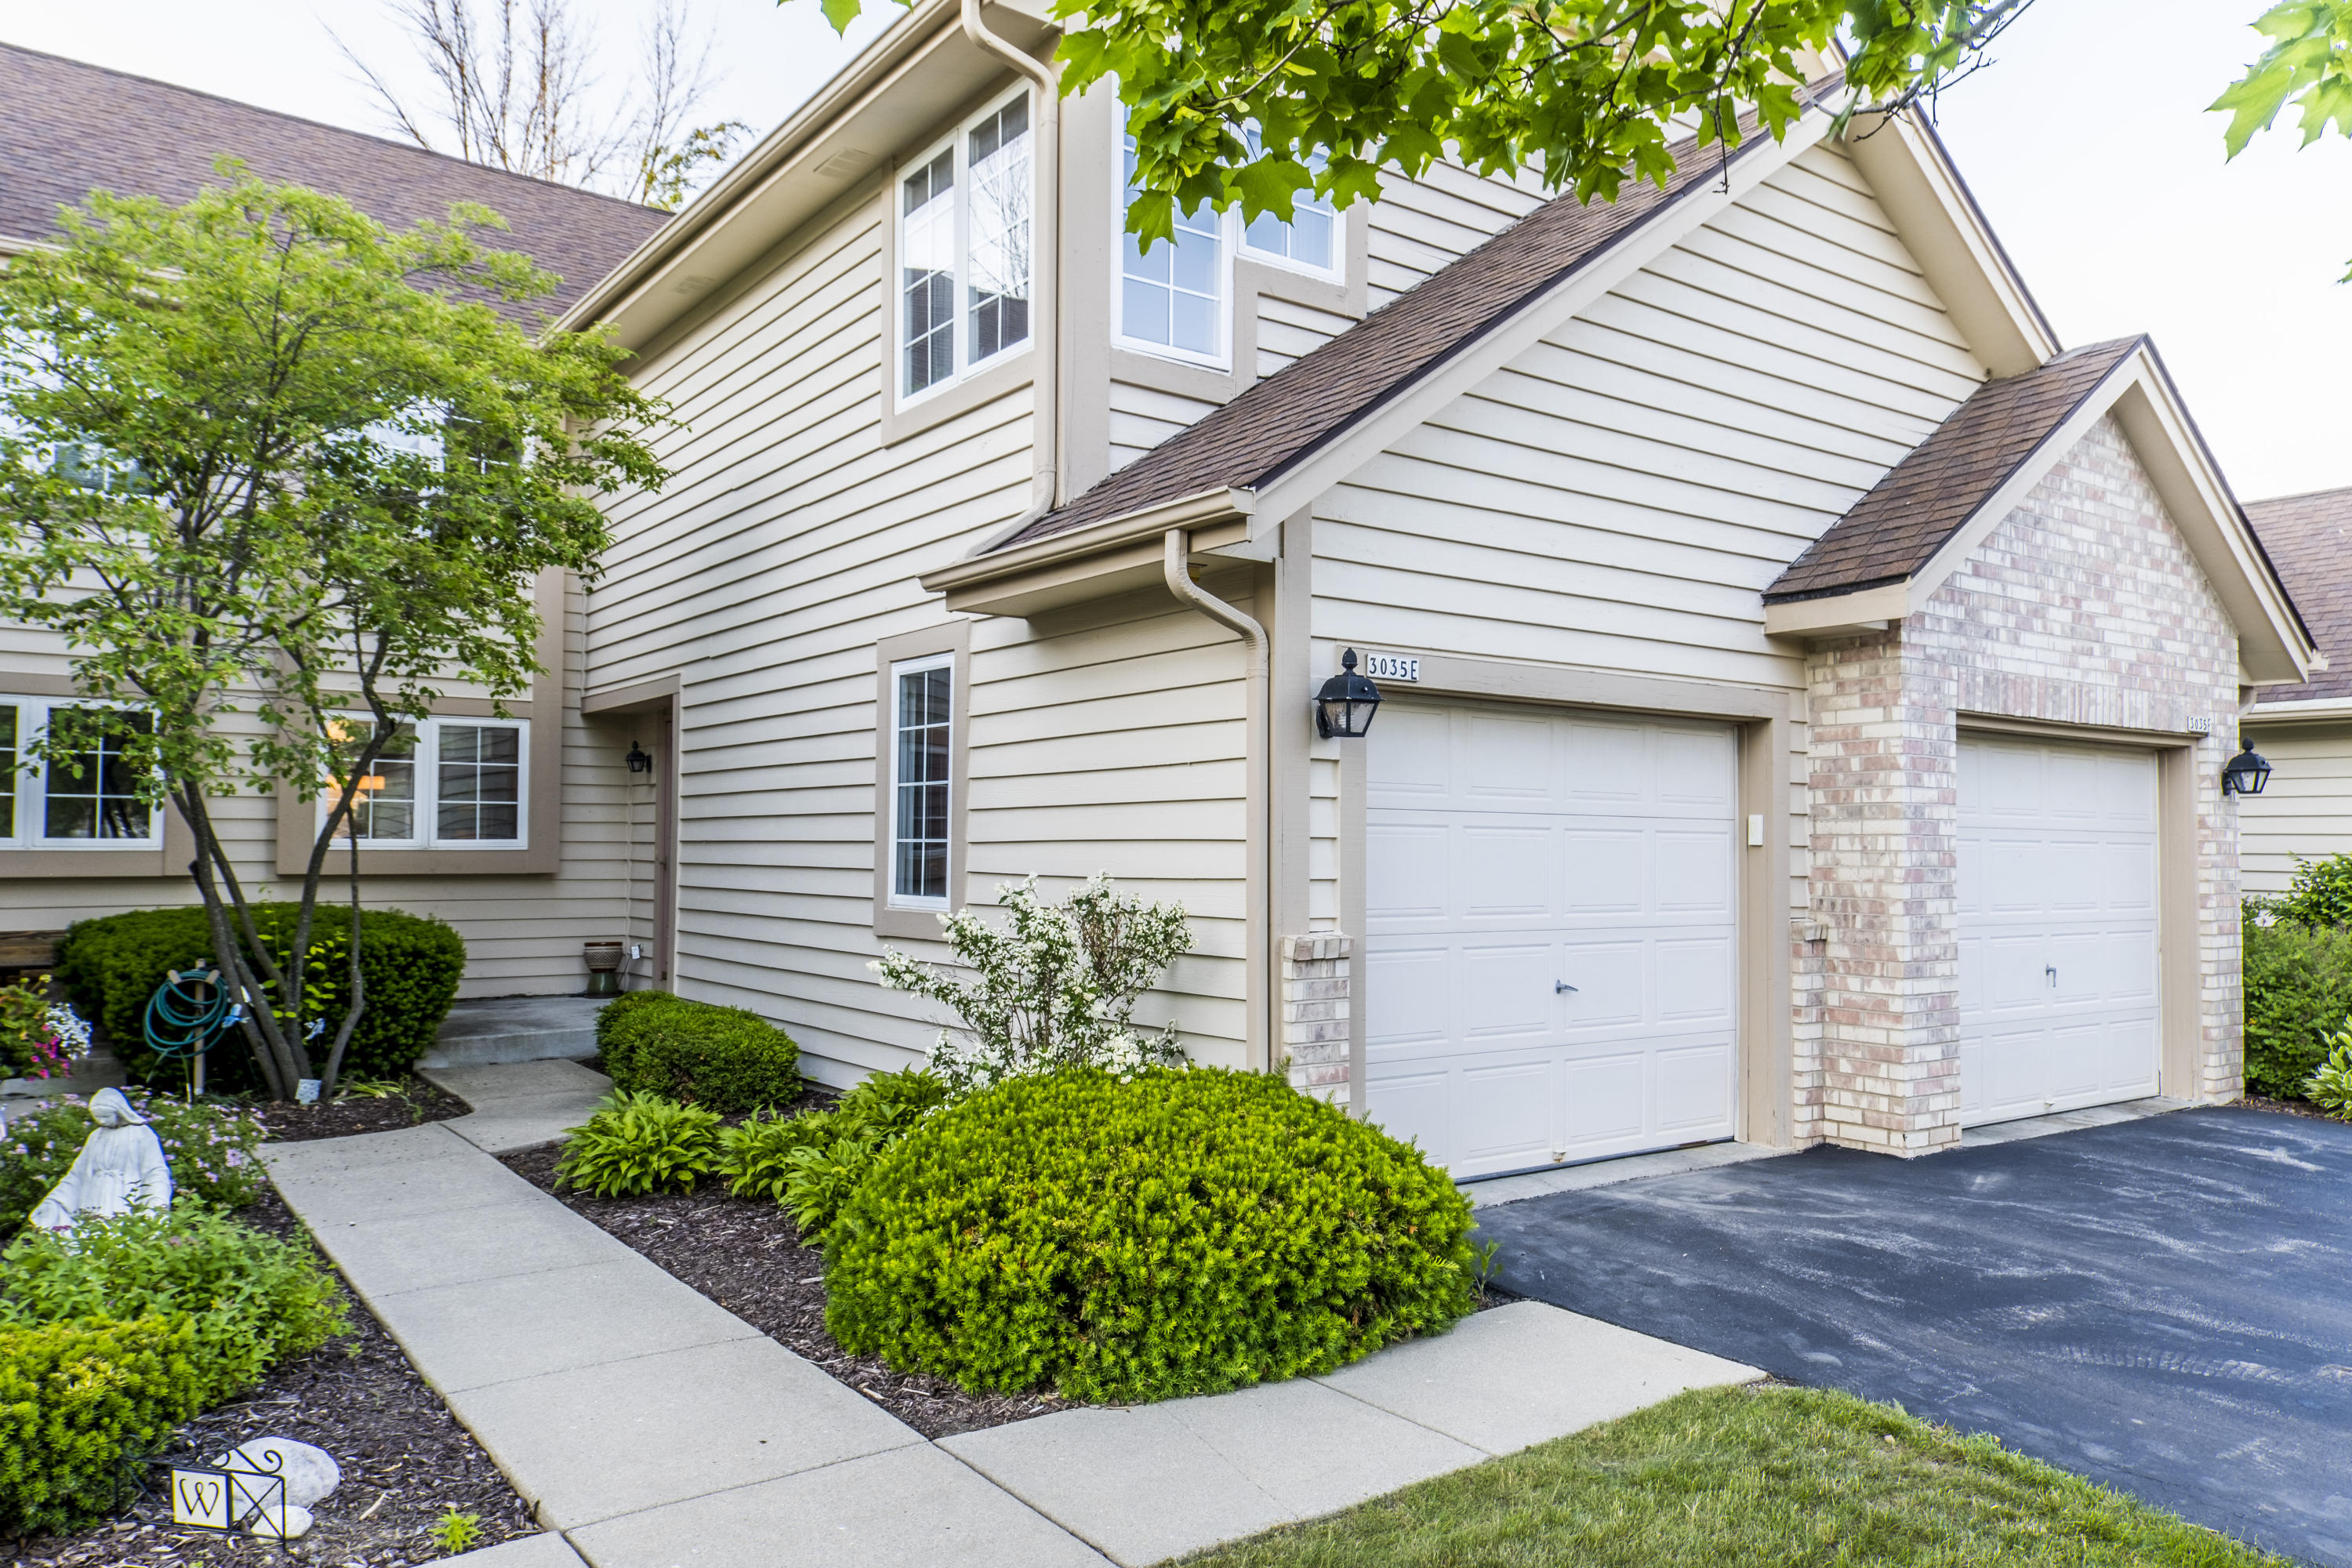 3035 River Birch Dr, Brookfield, Wisconsin 53045, 2 Bedrooms Bedrooms, 6 Rooms Rooms,2 BathroomsBathrooms,Condominiums,For Sale,River Birch Dr,1,1694645